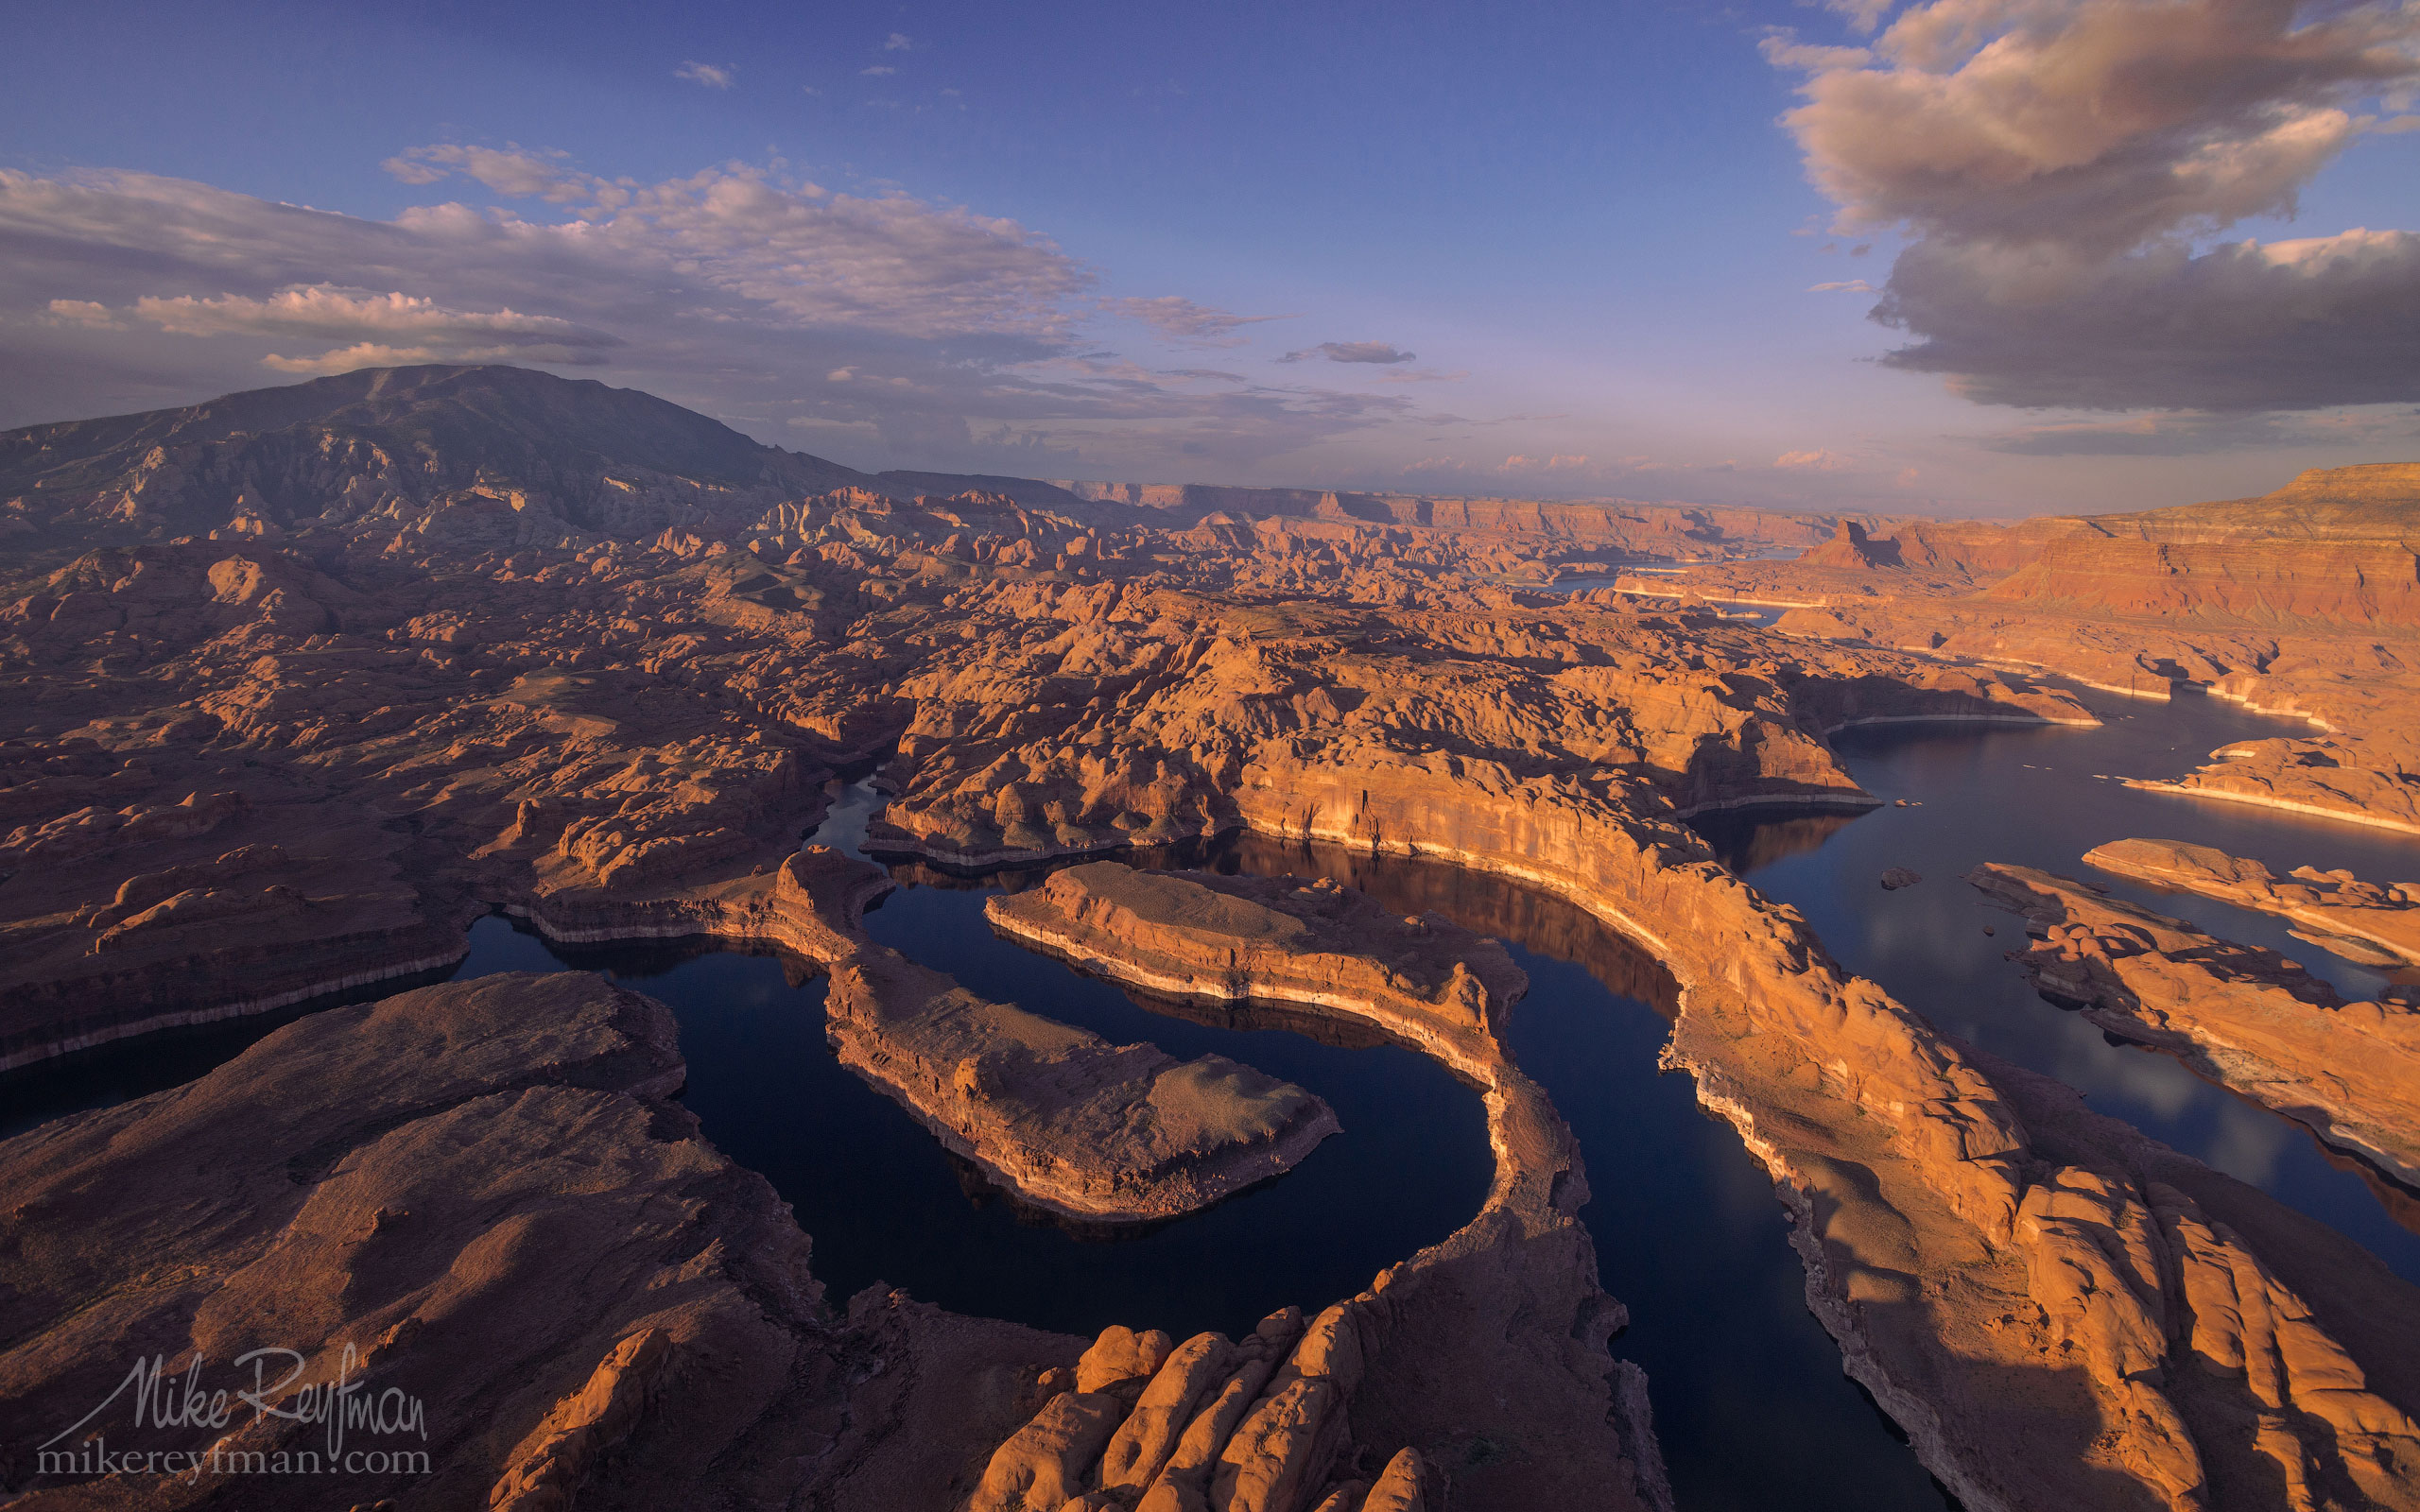 Confluence of San Juan & Colorado Rivers. Glen Canyon NRA, Lake Powell, Utah/Arizona, USA. Aerial. 007-LP3_O3X5454.jpg - Lake Powell, Glen Canyon NAR. Colorado and Sun Juan Rivers. Utah/Arizona, USA  - Mike Reyfman Photography